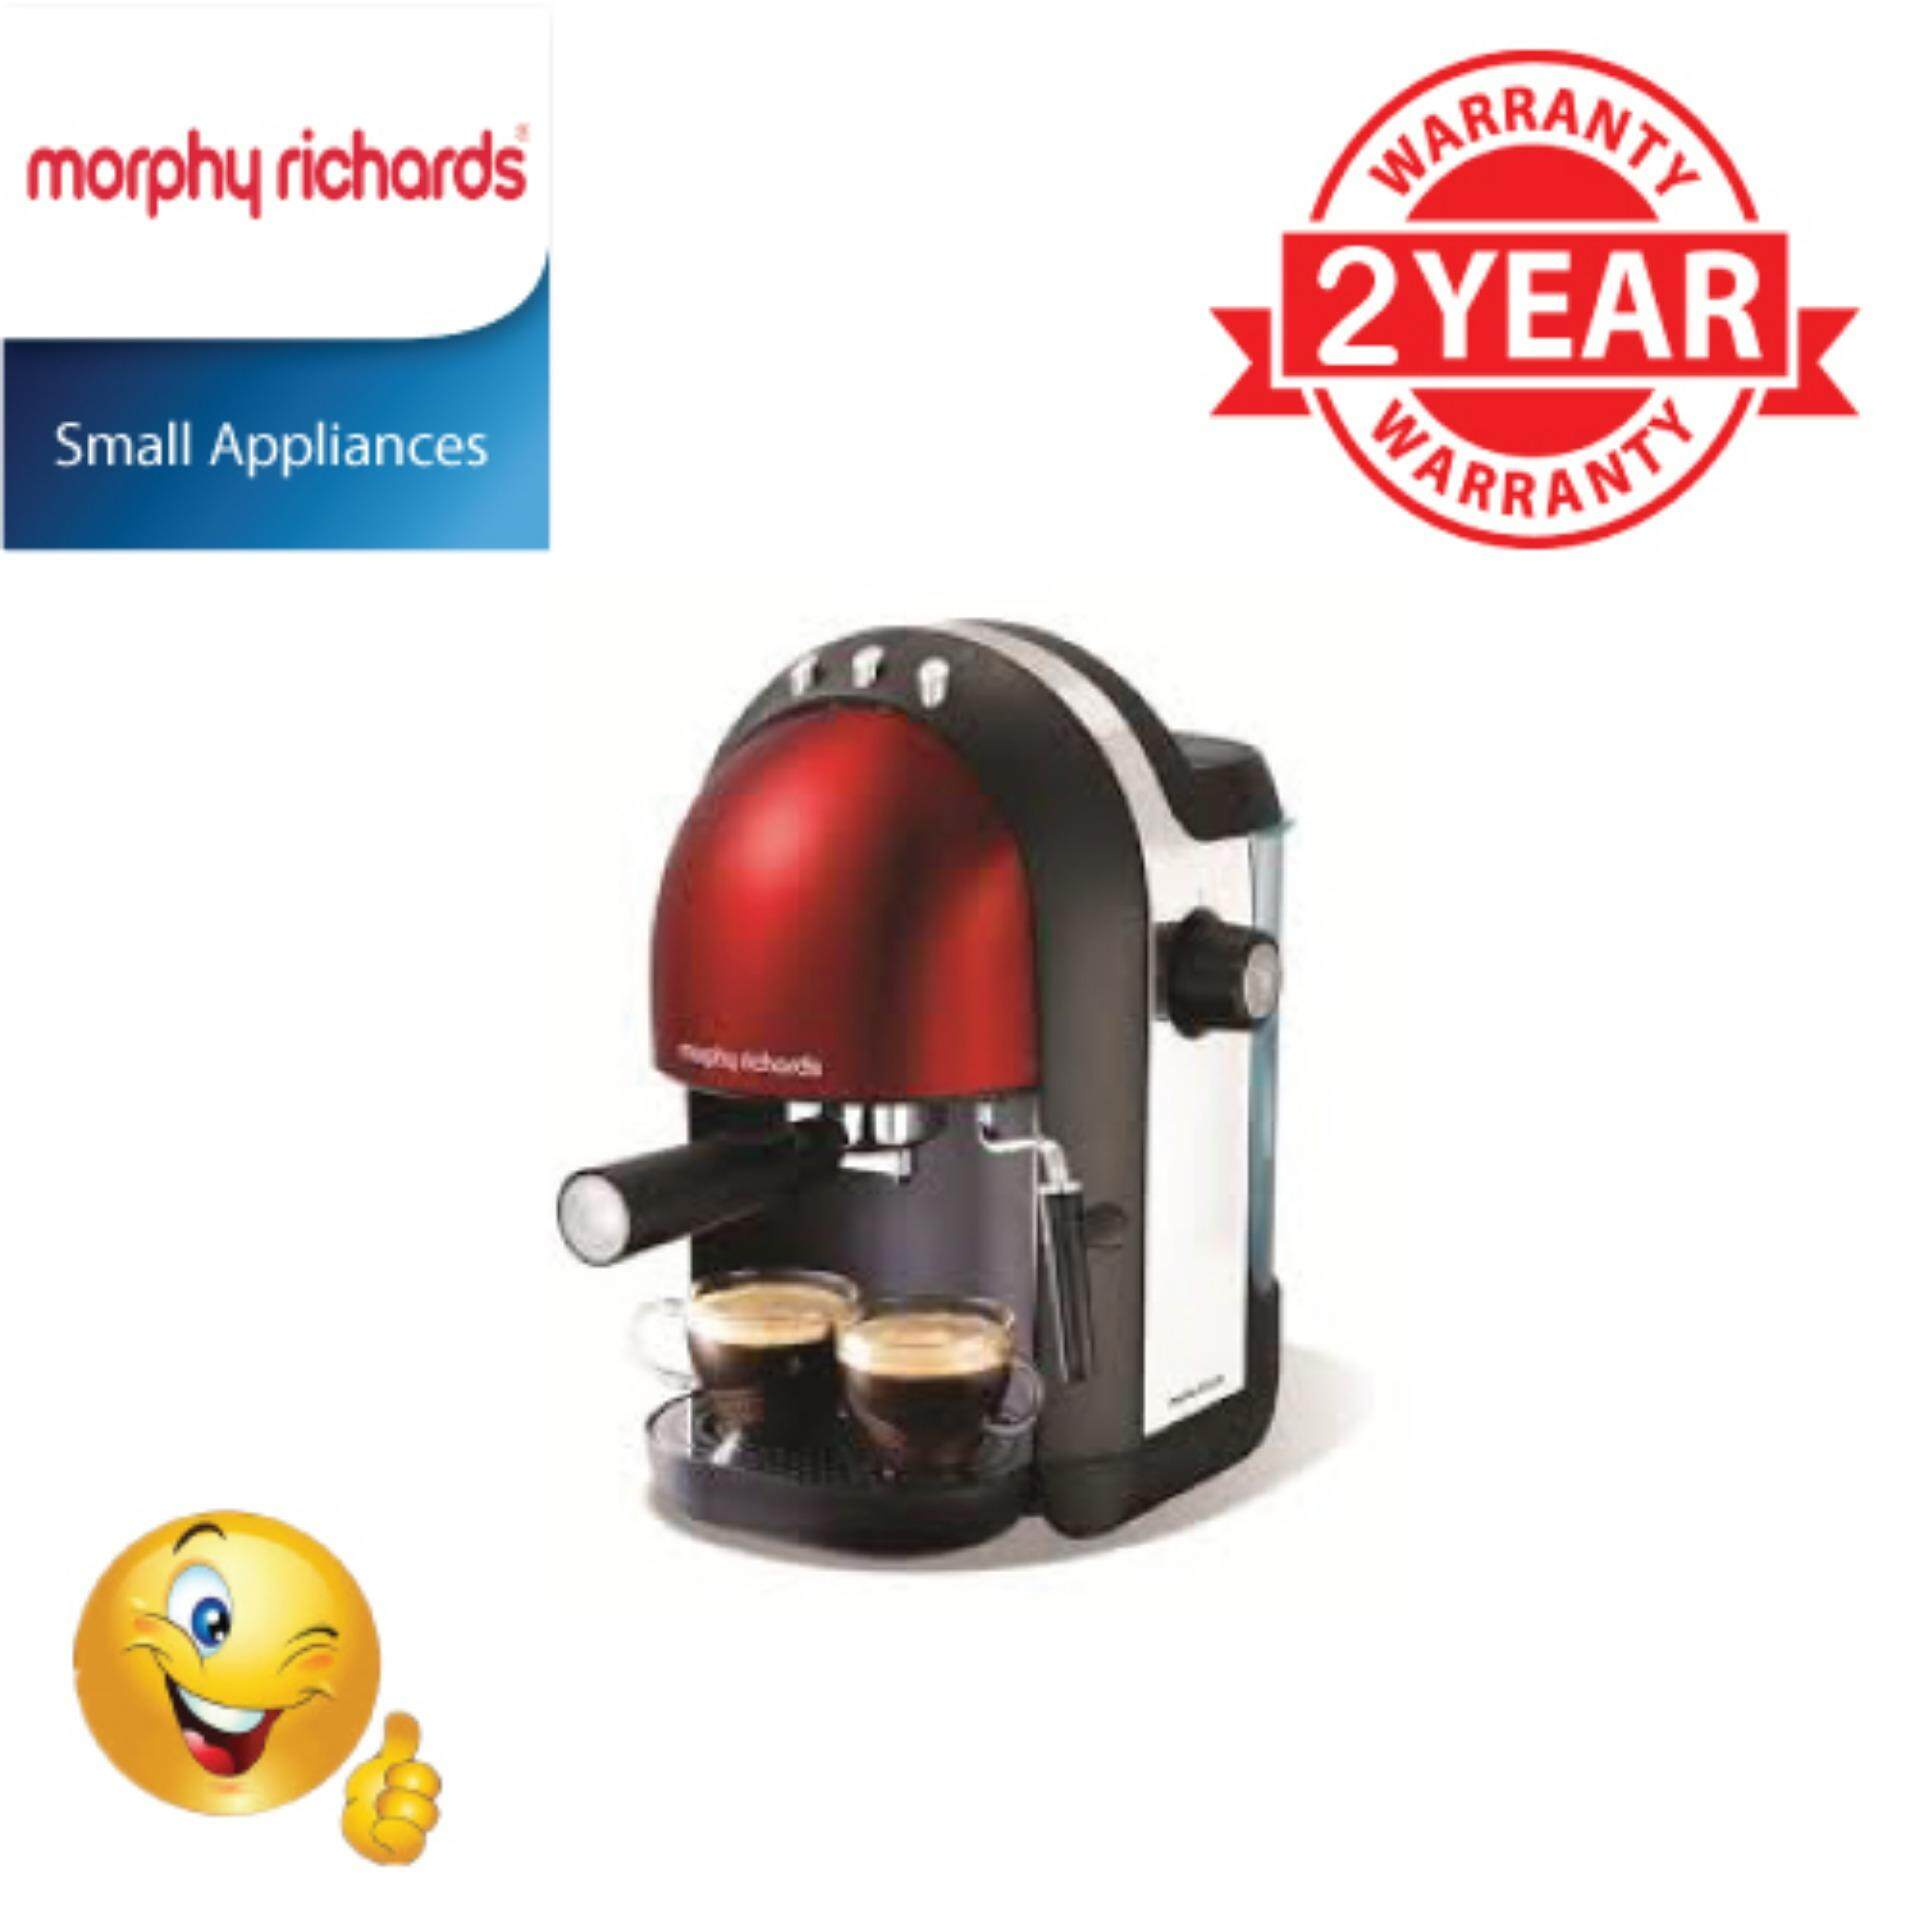 MENO ESPRESSO MORPHY RICHARD 172002 RED